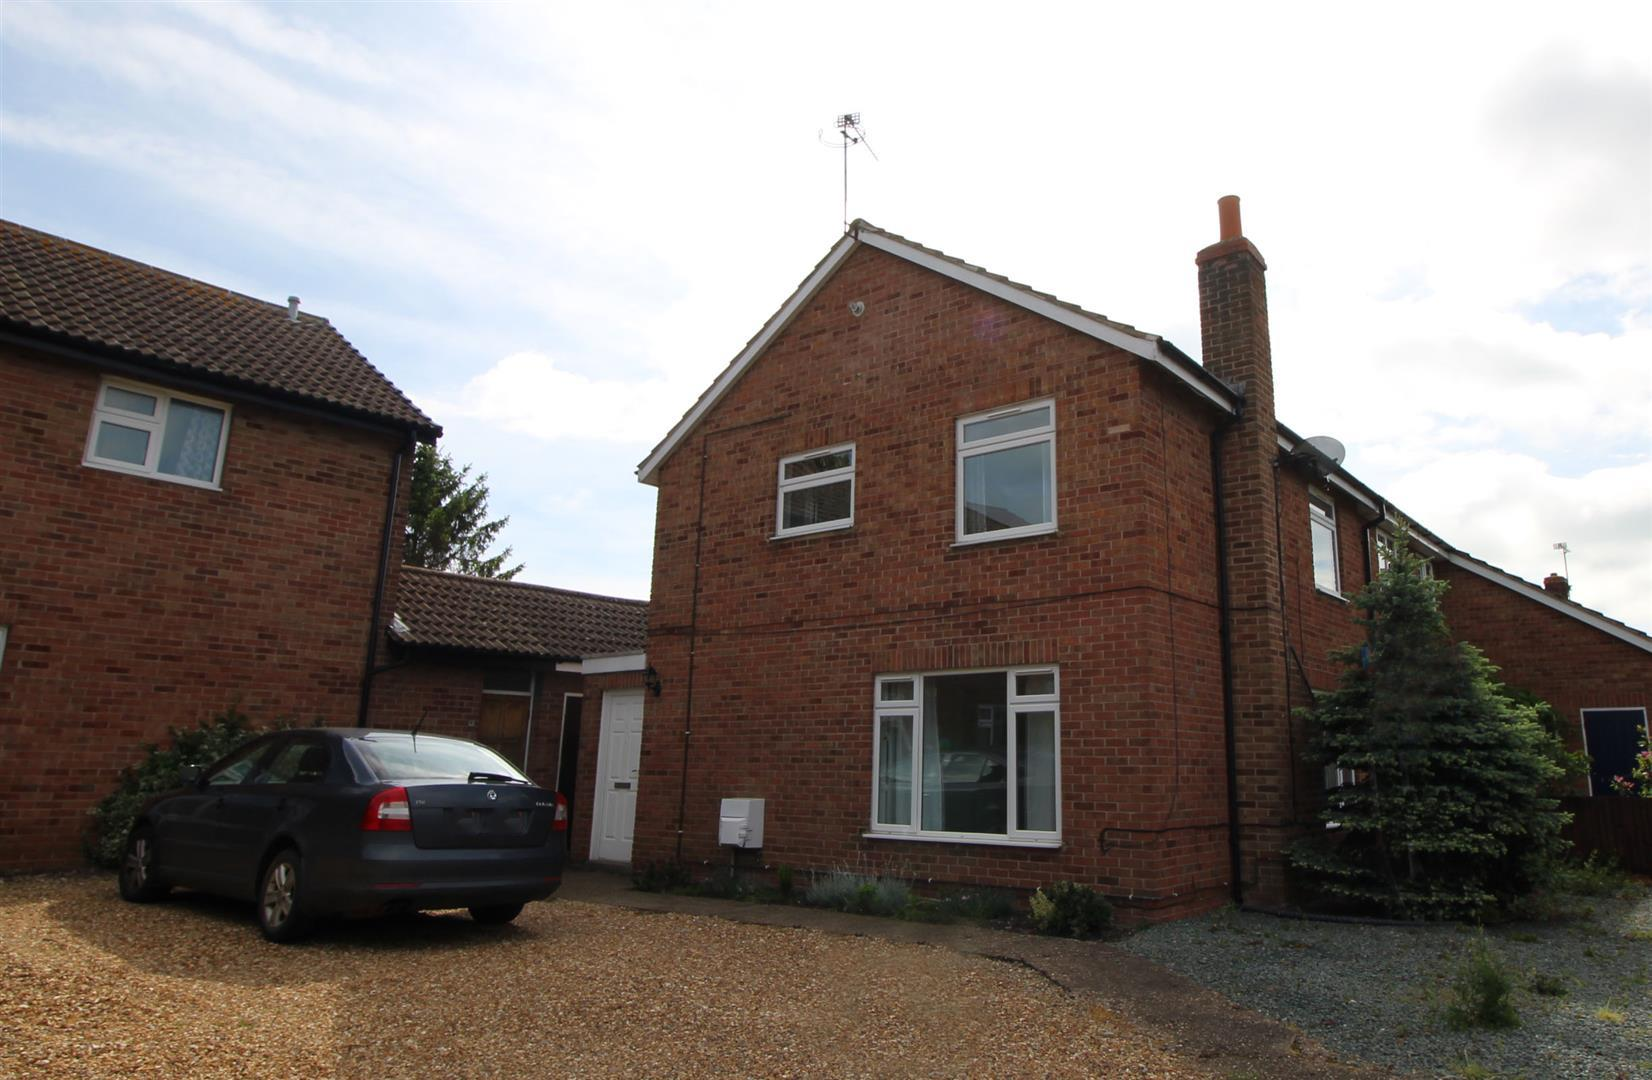 Orchard Close, Barnstone, Nottingham